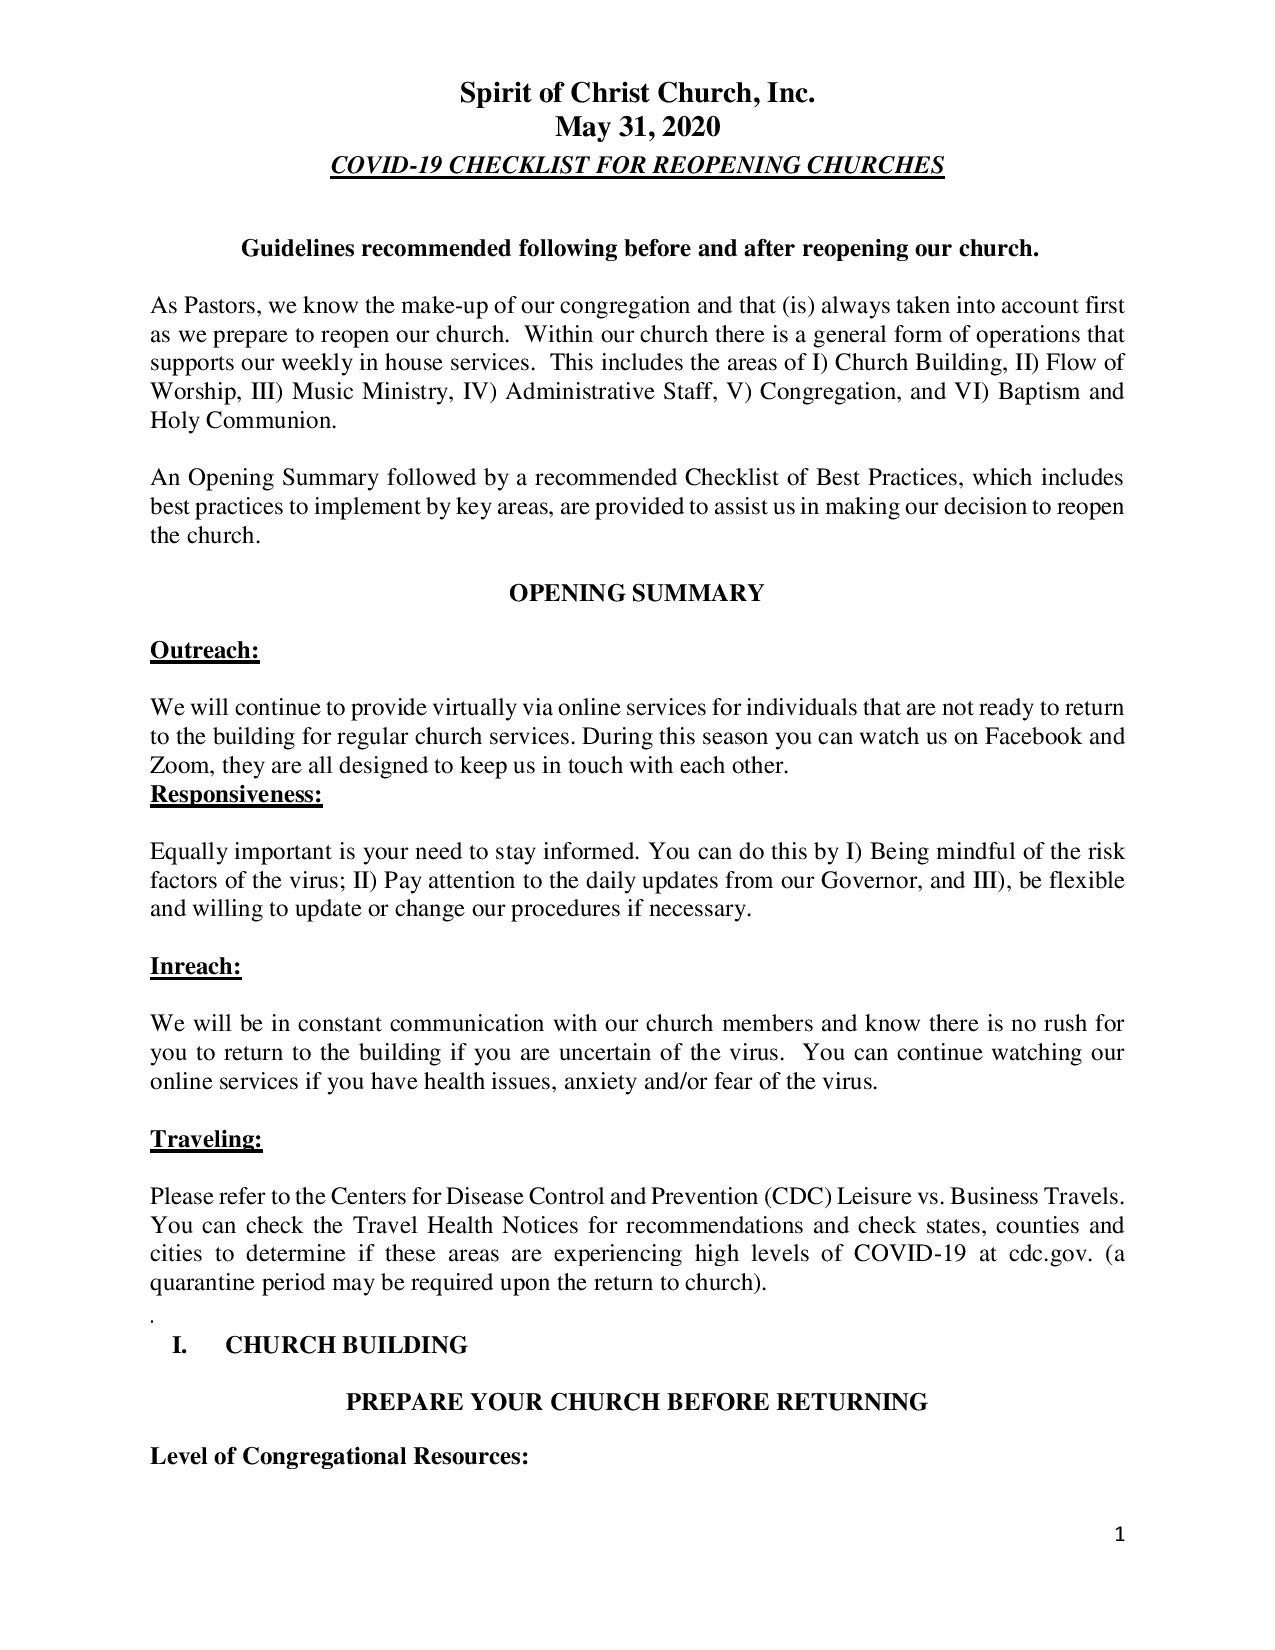 COVID-19_SAFELY REOPENING HOUSES OF WORSHIP GUIDELINE AND SUMMARY-page-001